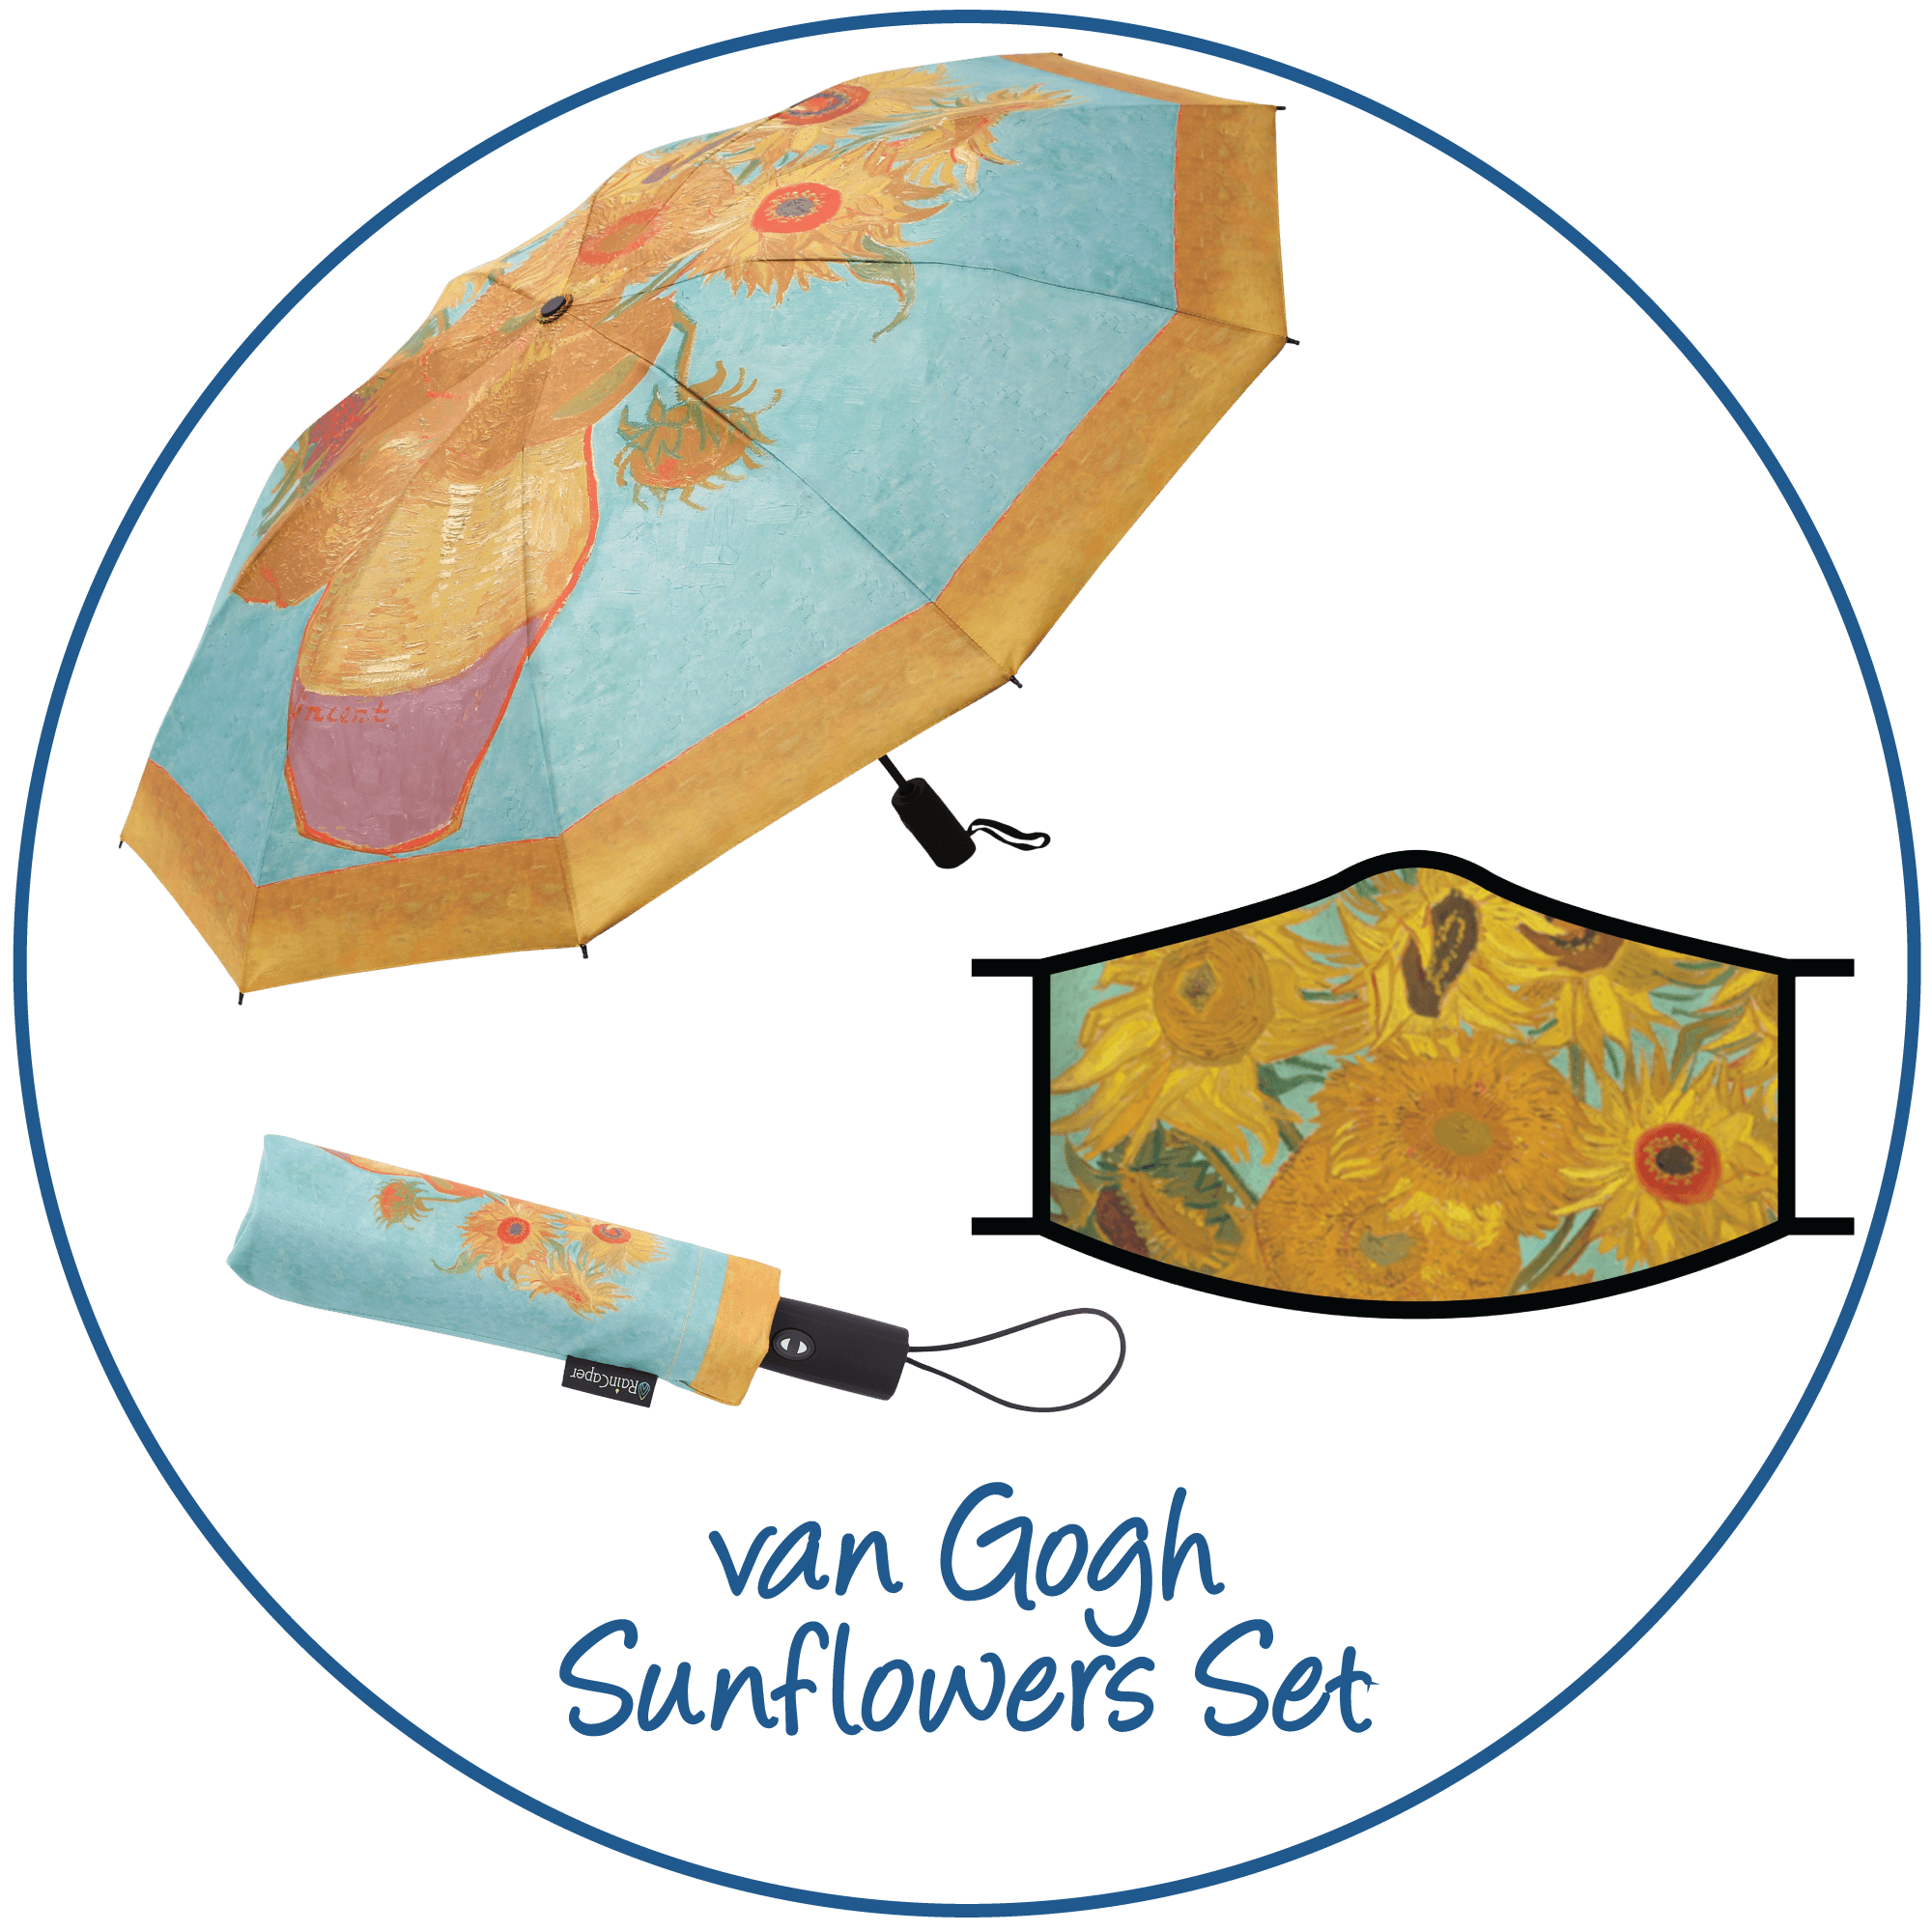 van Gogh Sunflowers print folding travel umbrella with sleeve,  paired with a matching van Gogh Sunflowers print reusable cloth face mask